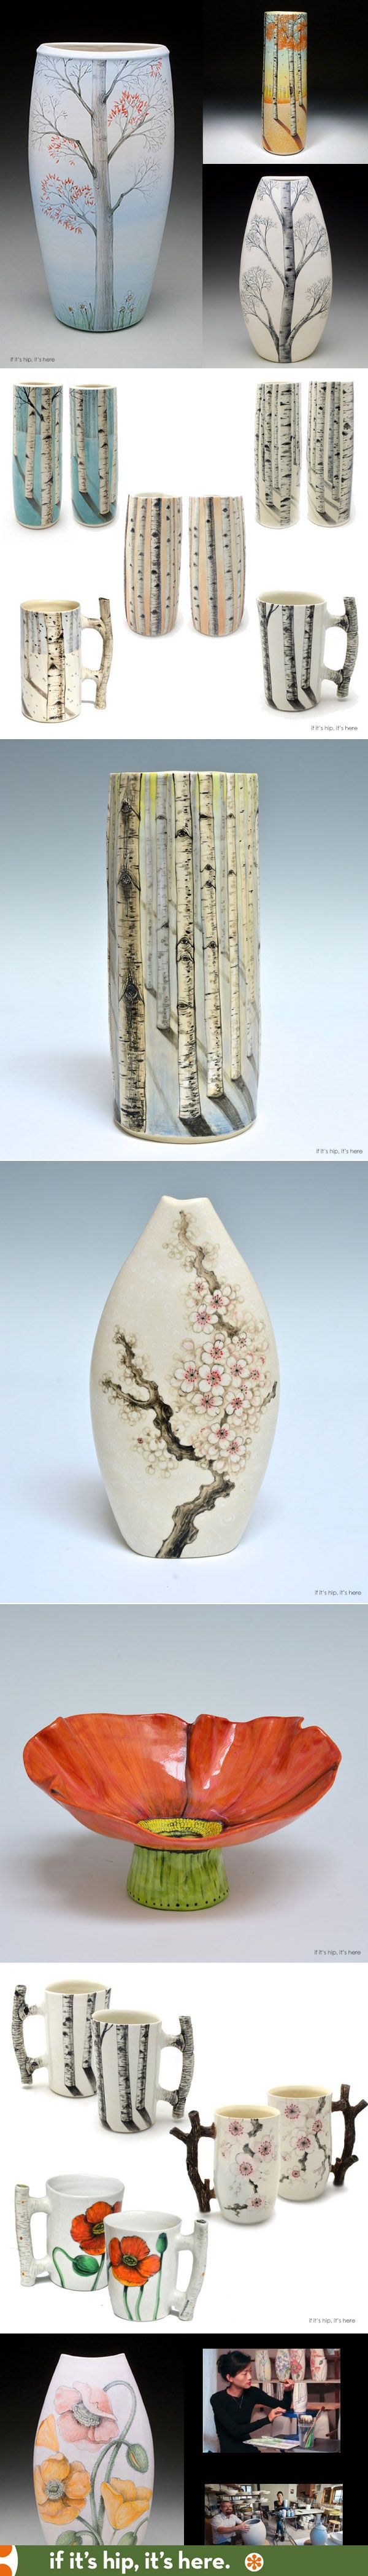 Hand-painted Porcelain by Heesoo Lee at http://www.ifitshipitshere.com/pretty-porcelain-vessels-heesoo-lee/